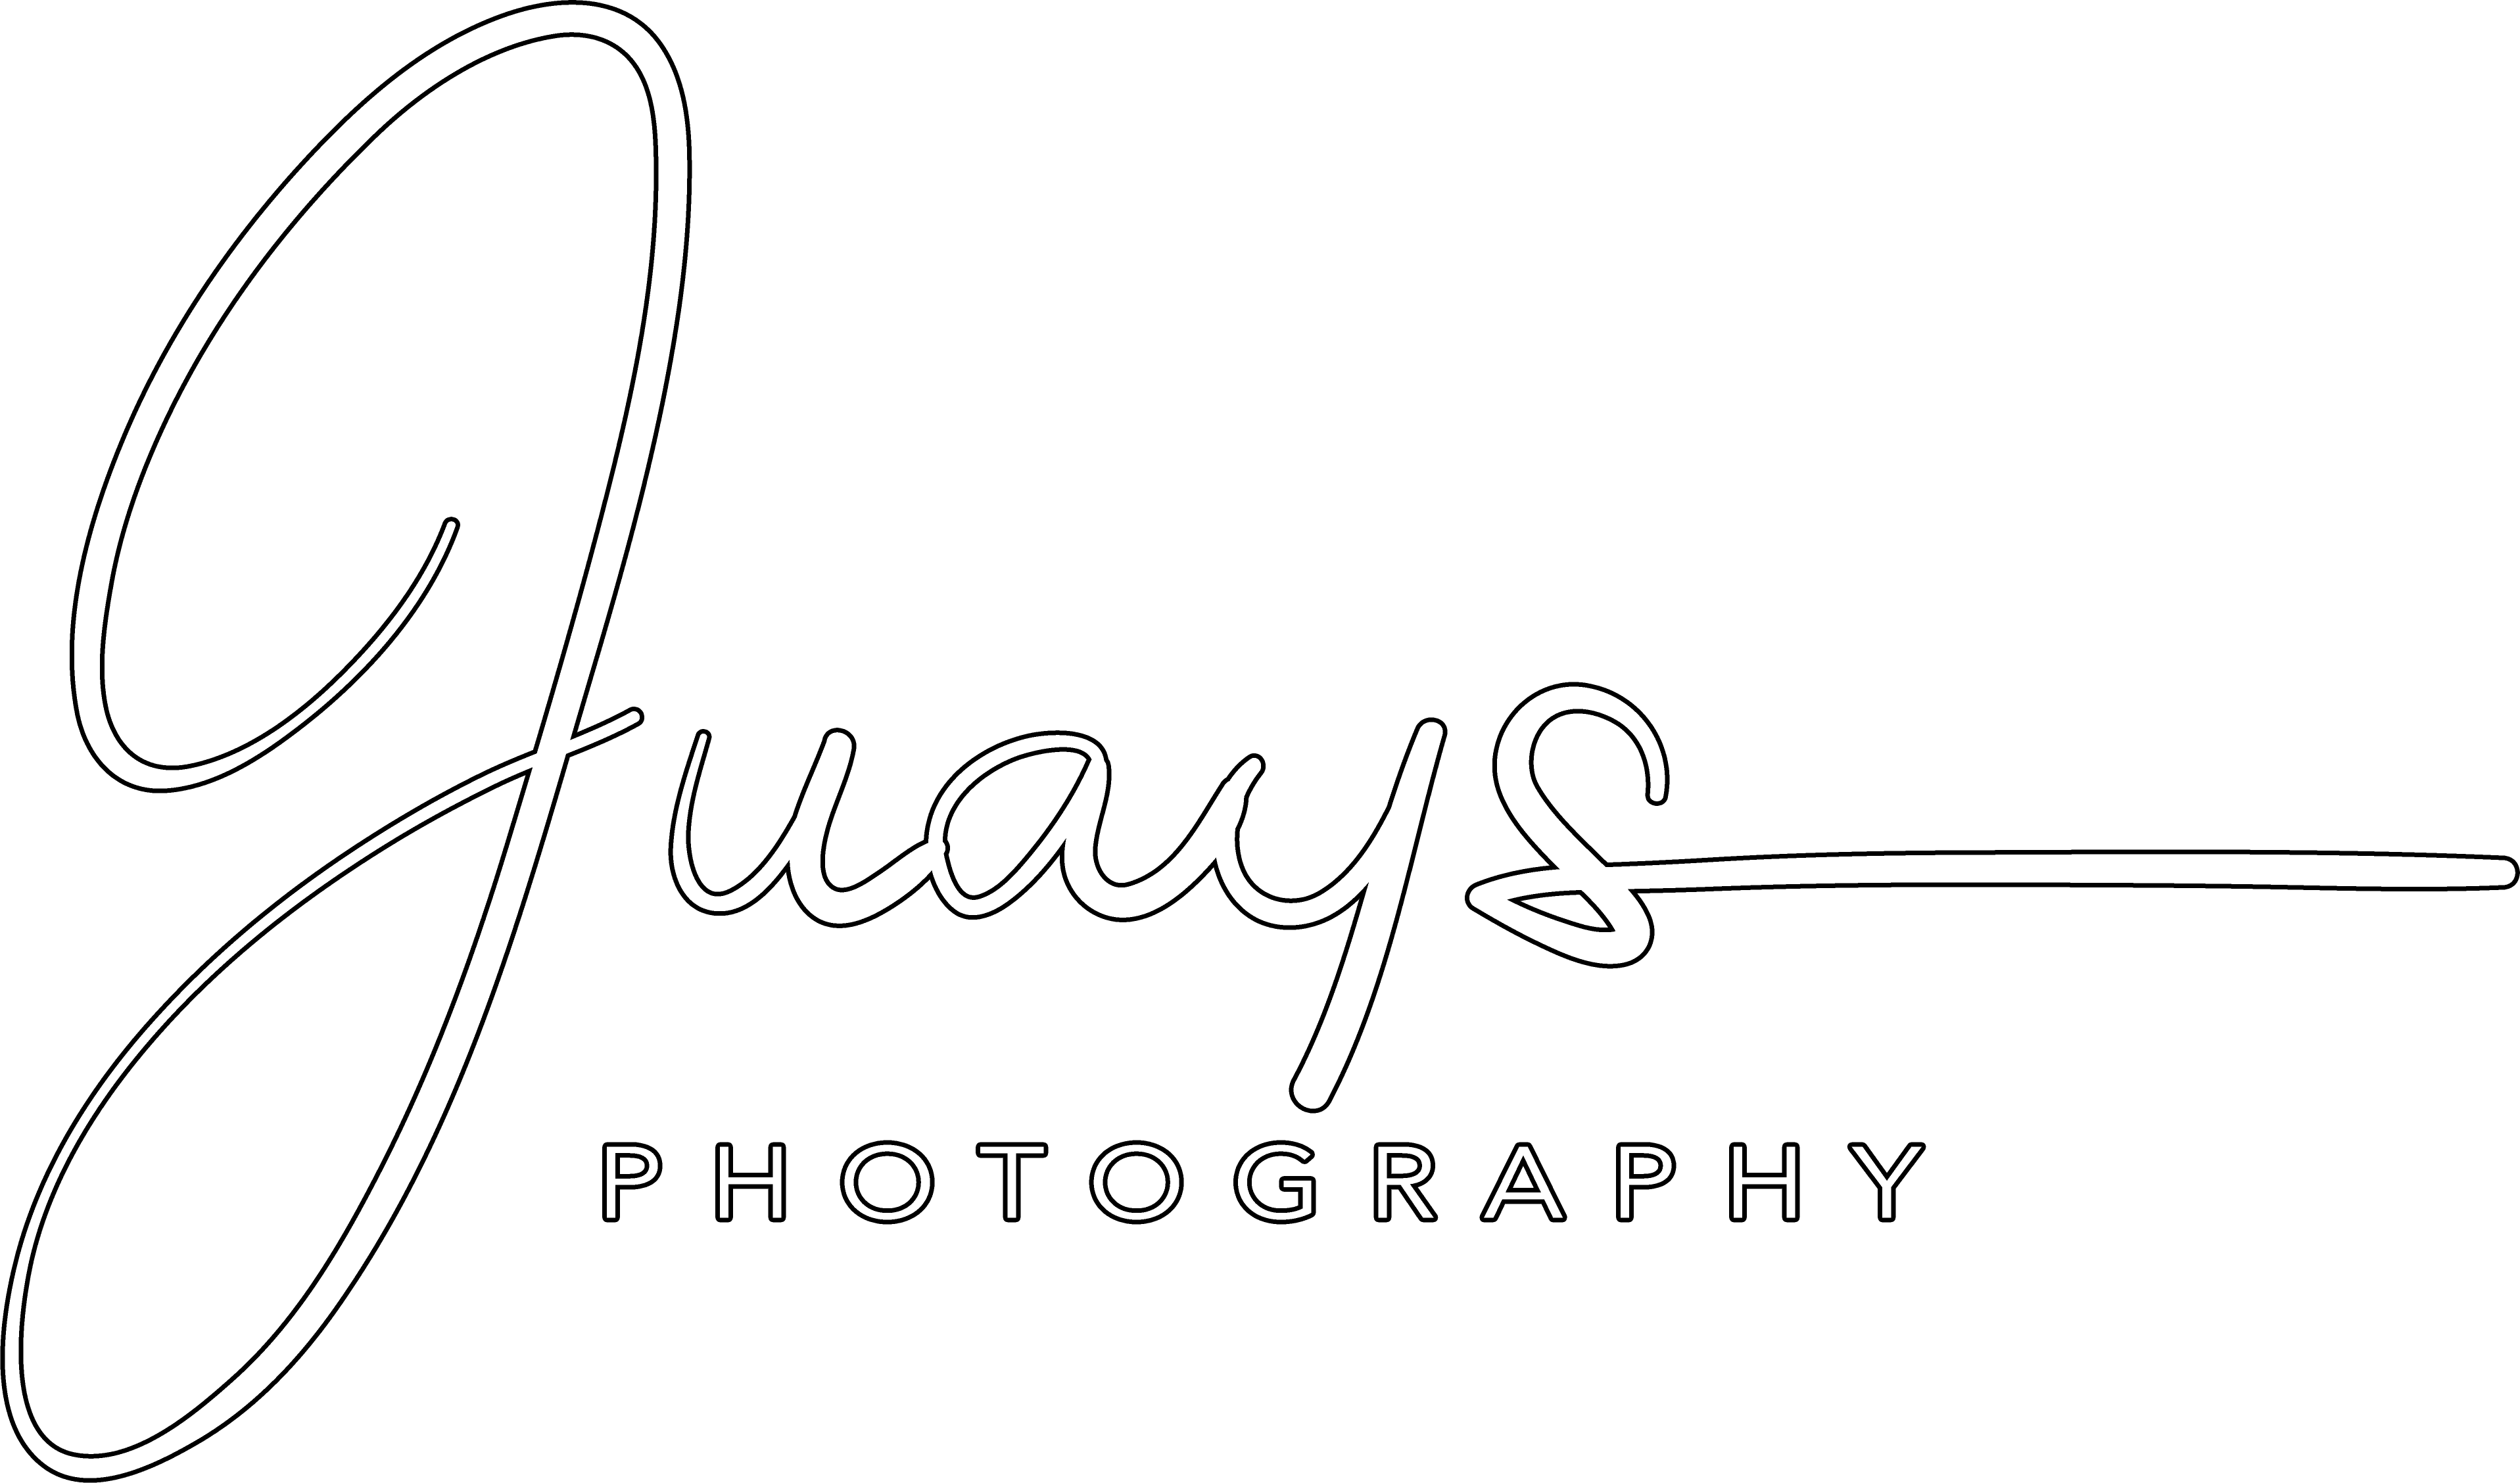 Juays Photography